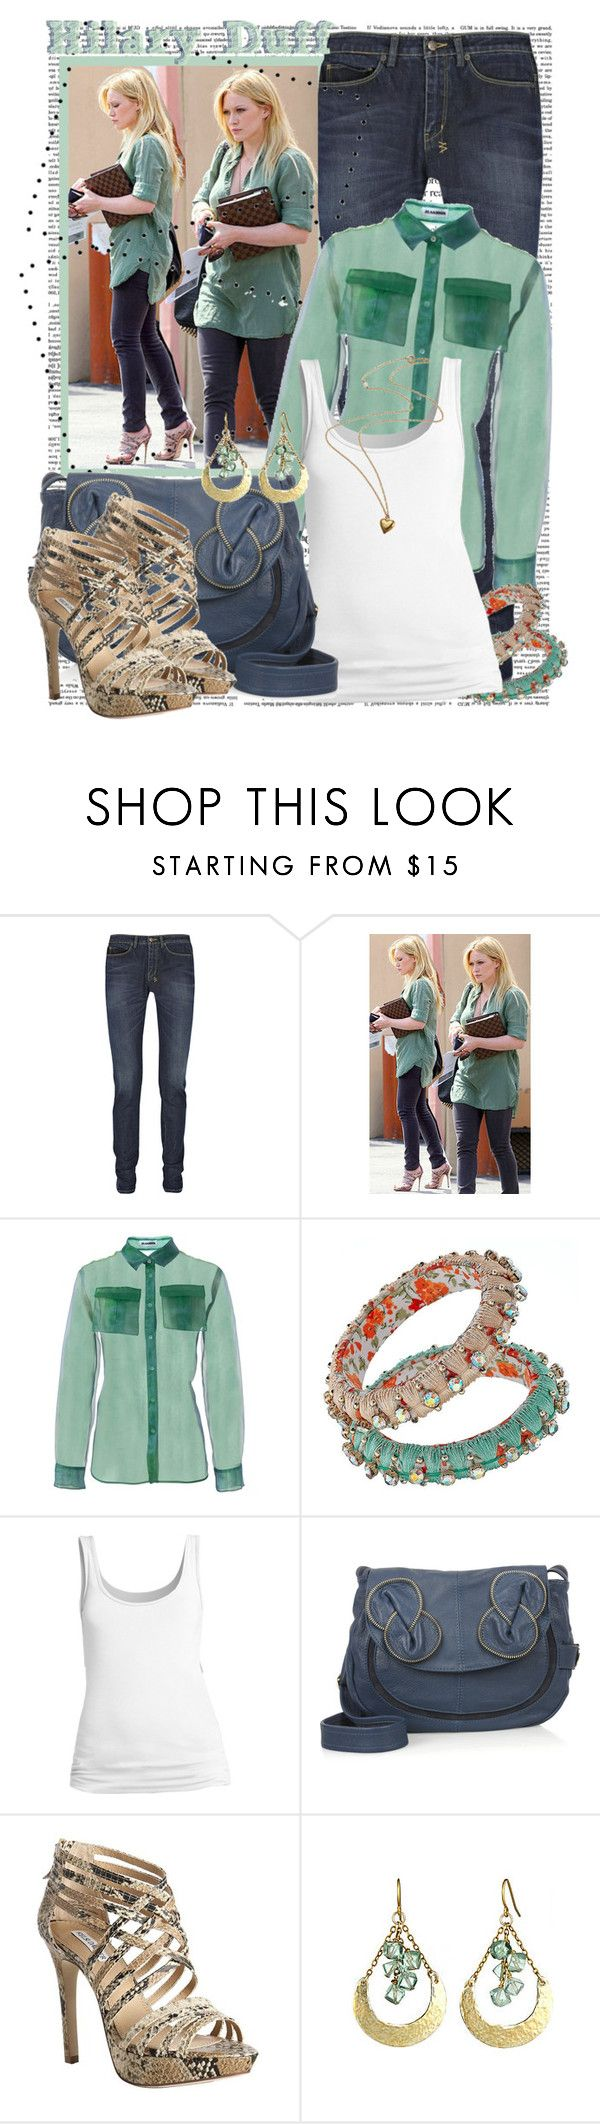 """""""Hilary Duff"""" by crystal85 ❤ liked on Polyvore featuring Lauren Ralph Lauren, Ksubi, Jil Sander, BP., See by Chloé, Kelsi Dagger Brooklyn and Alicia Marilyn Designs"""